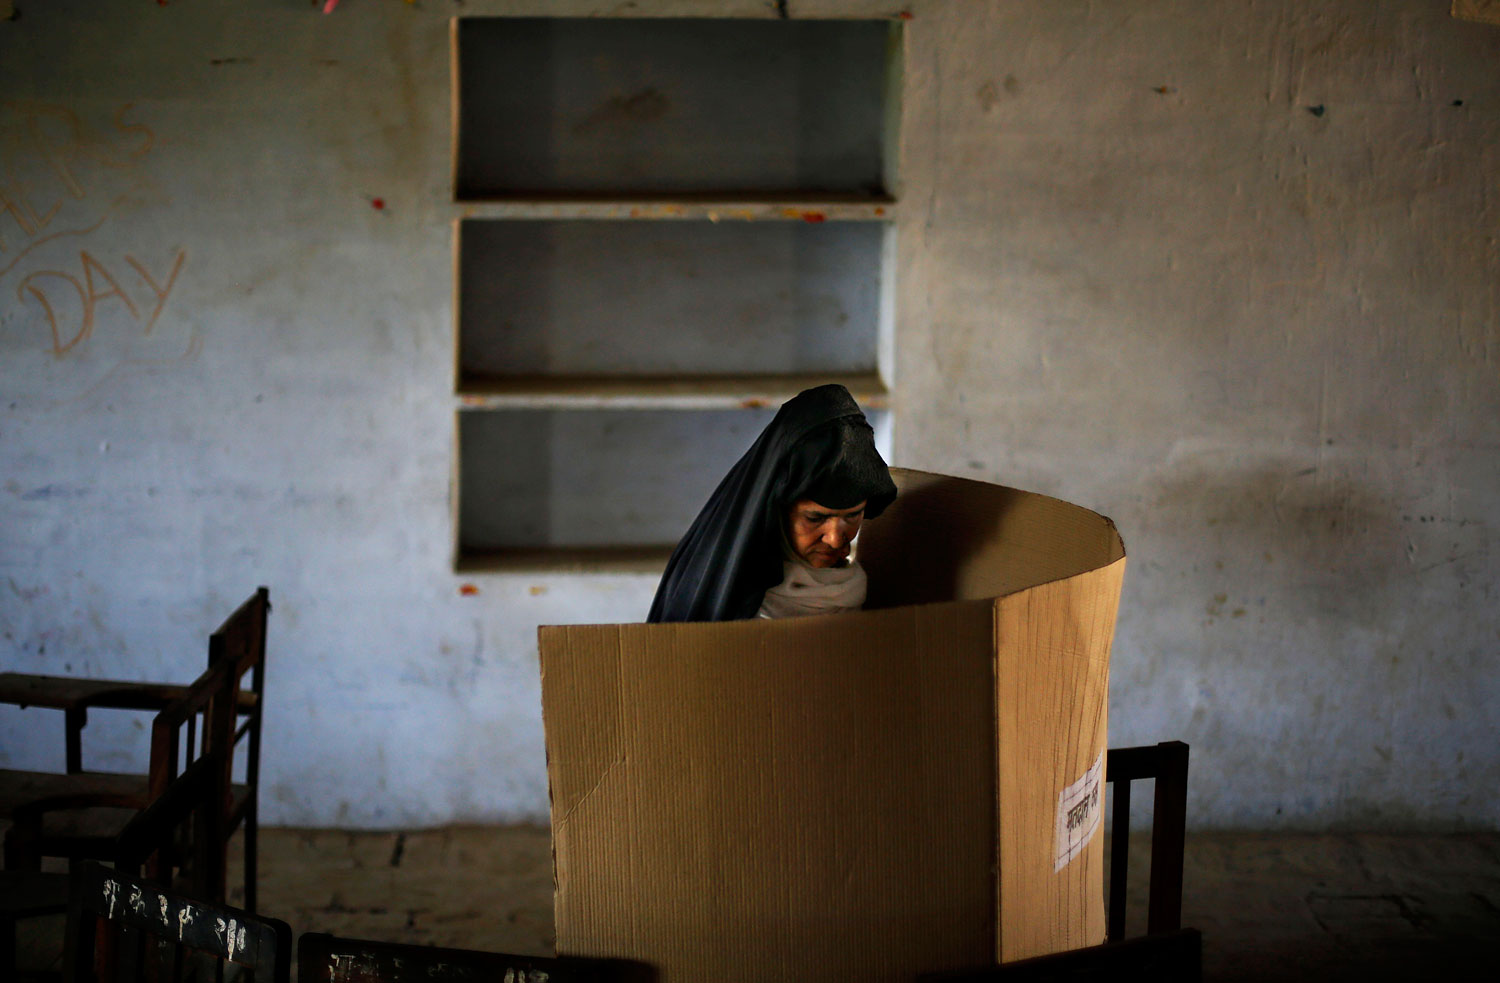 An Indian woman casts her vote at a polling booth in Shahpur village in Muzaffarnagar, in the northern Indian state of Uttar Pradesh, April 10, 2014.